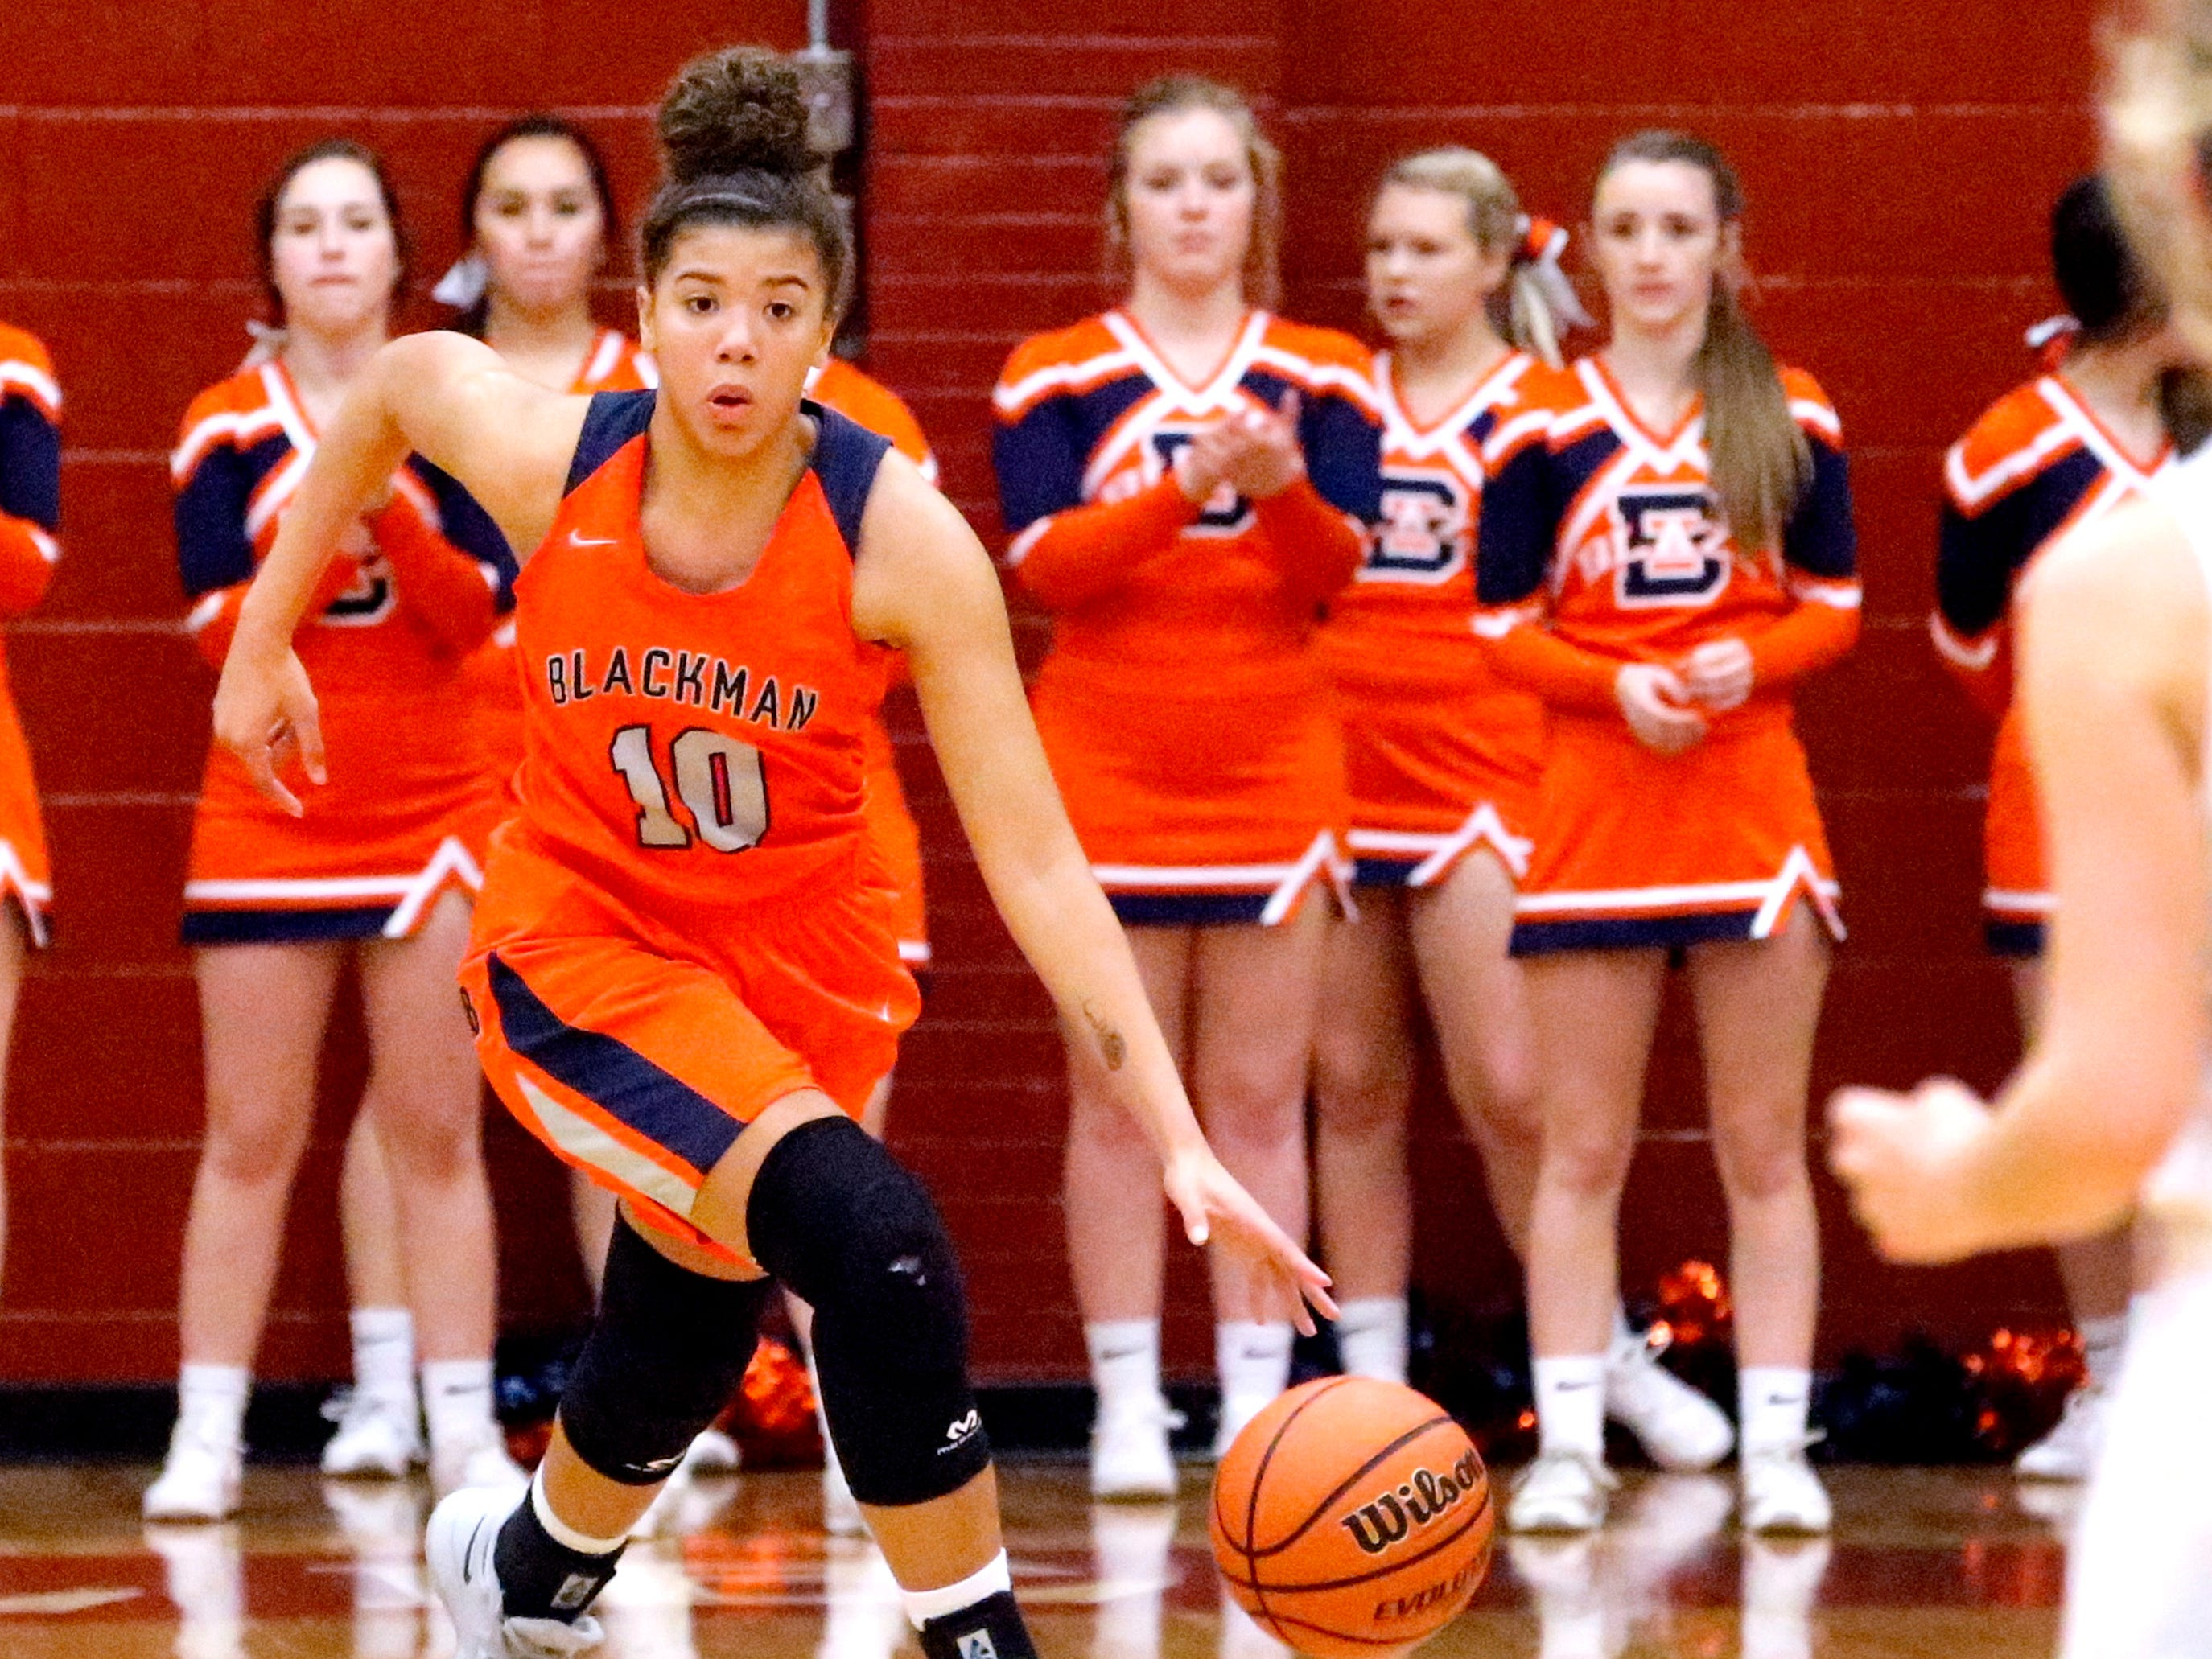 Blackman's Jaida Bond (10) brings the ball down the court during the game against Riverdale on Tuesday Jan. 8, 2019.